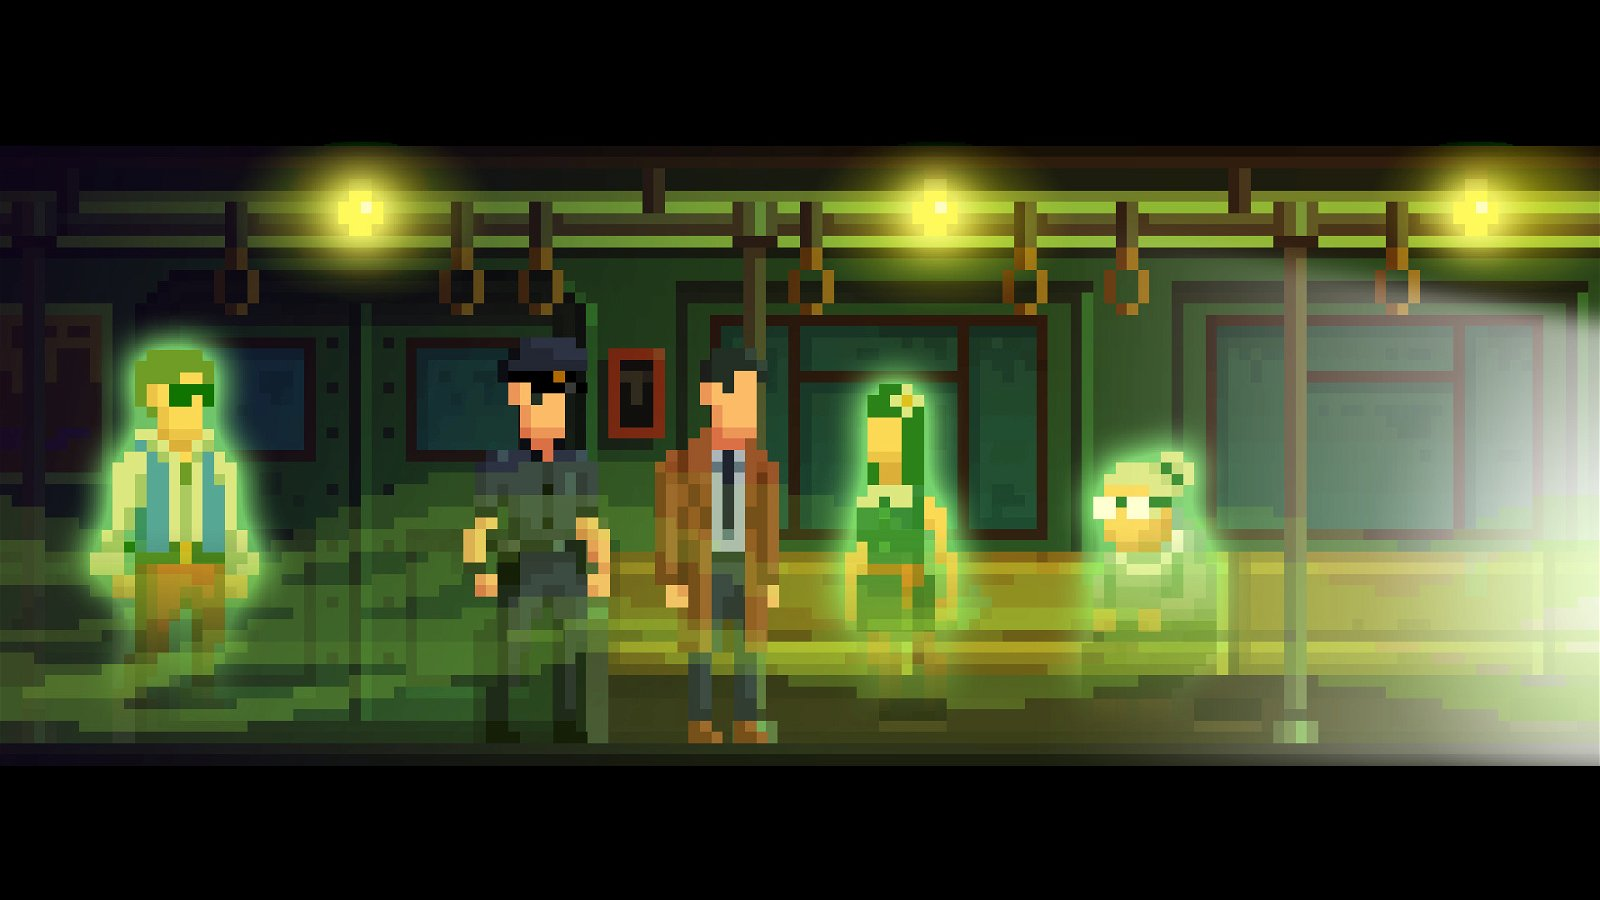 Darkside Detective (Pc) Review - Lovecraft Peaks 2